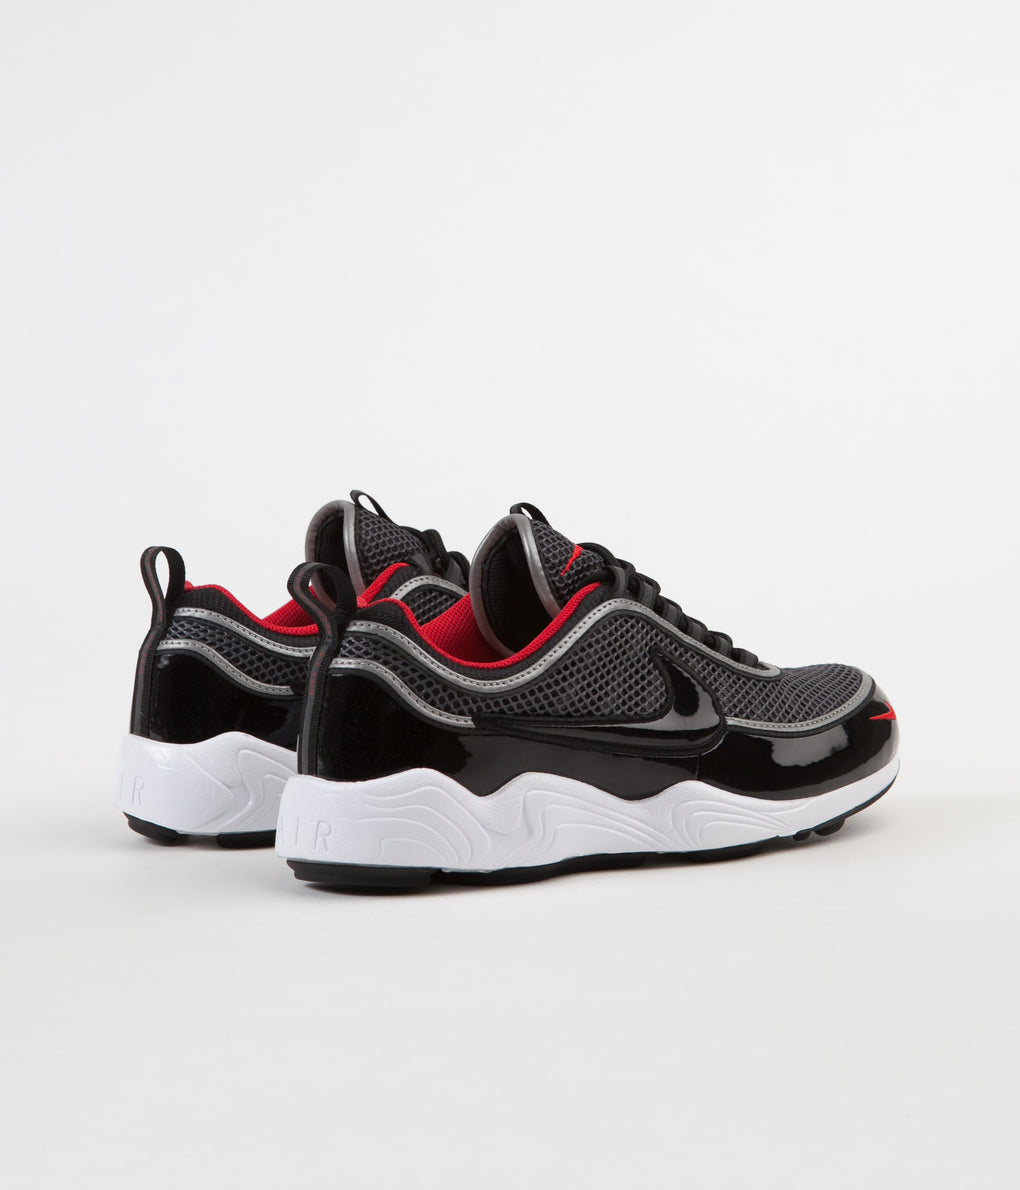 Nike Air Zoom Spiridon '16 Shoes - Black / Black - University Red - White